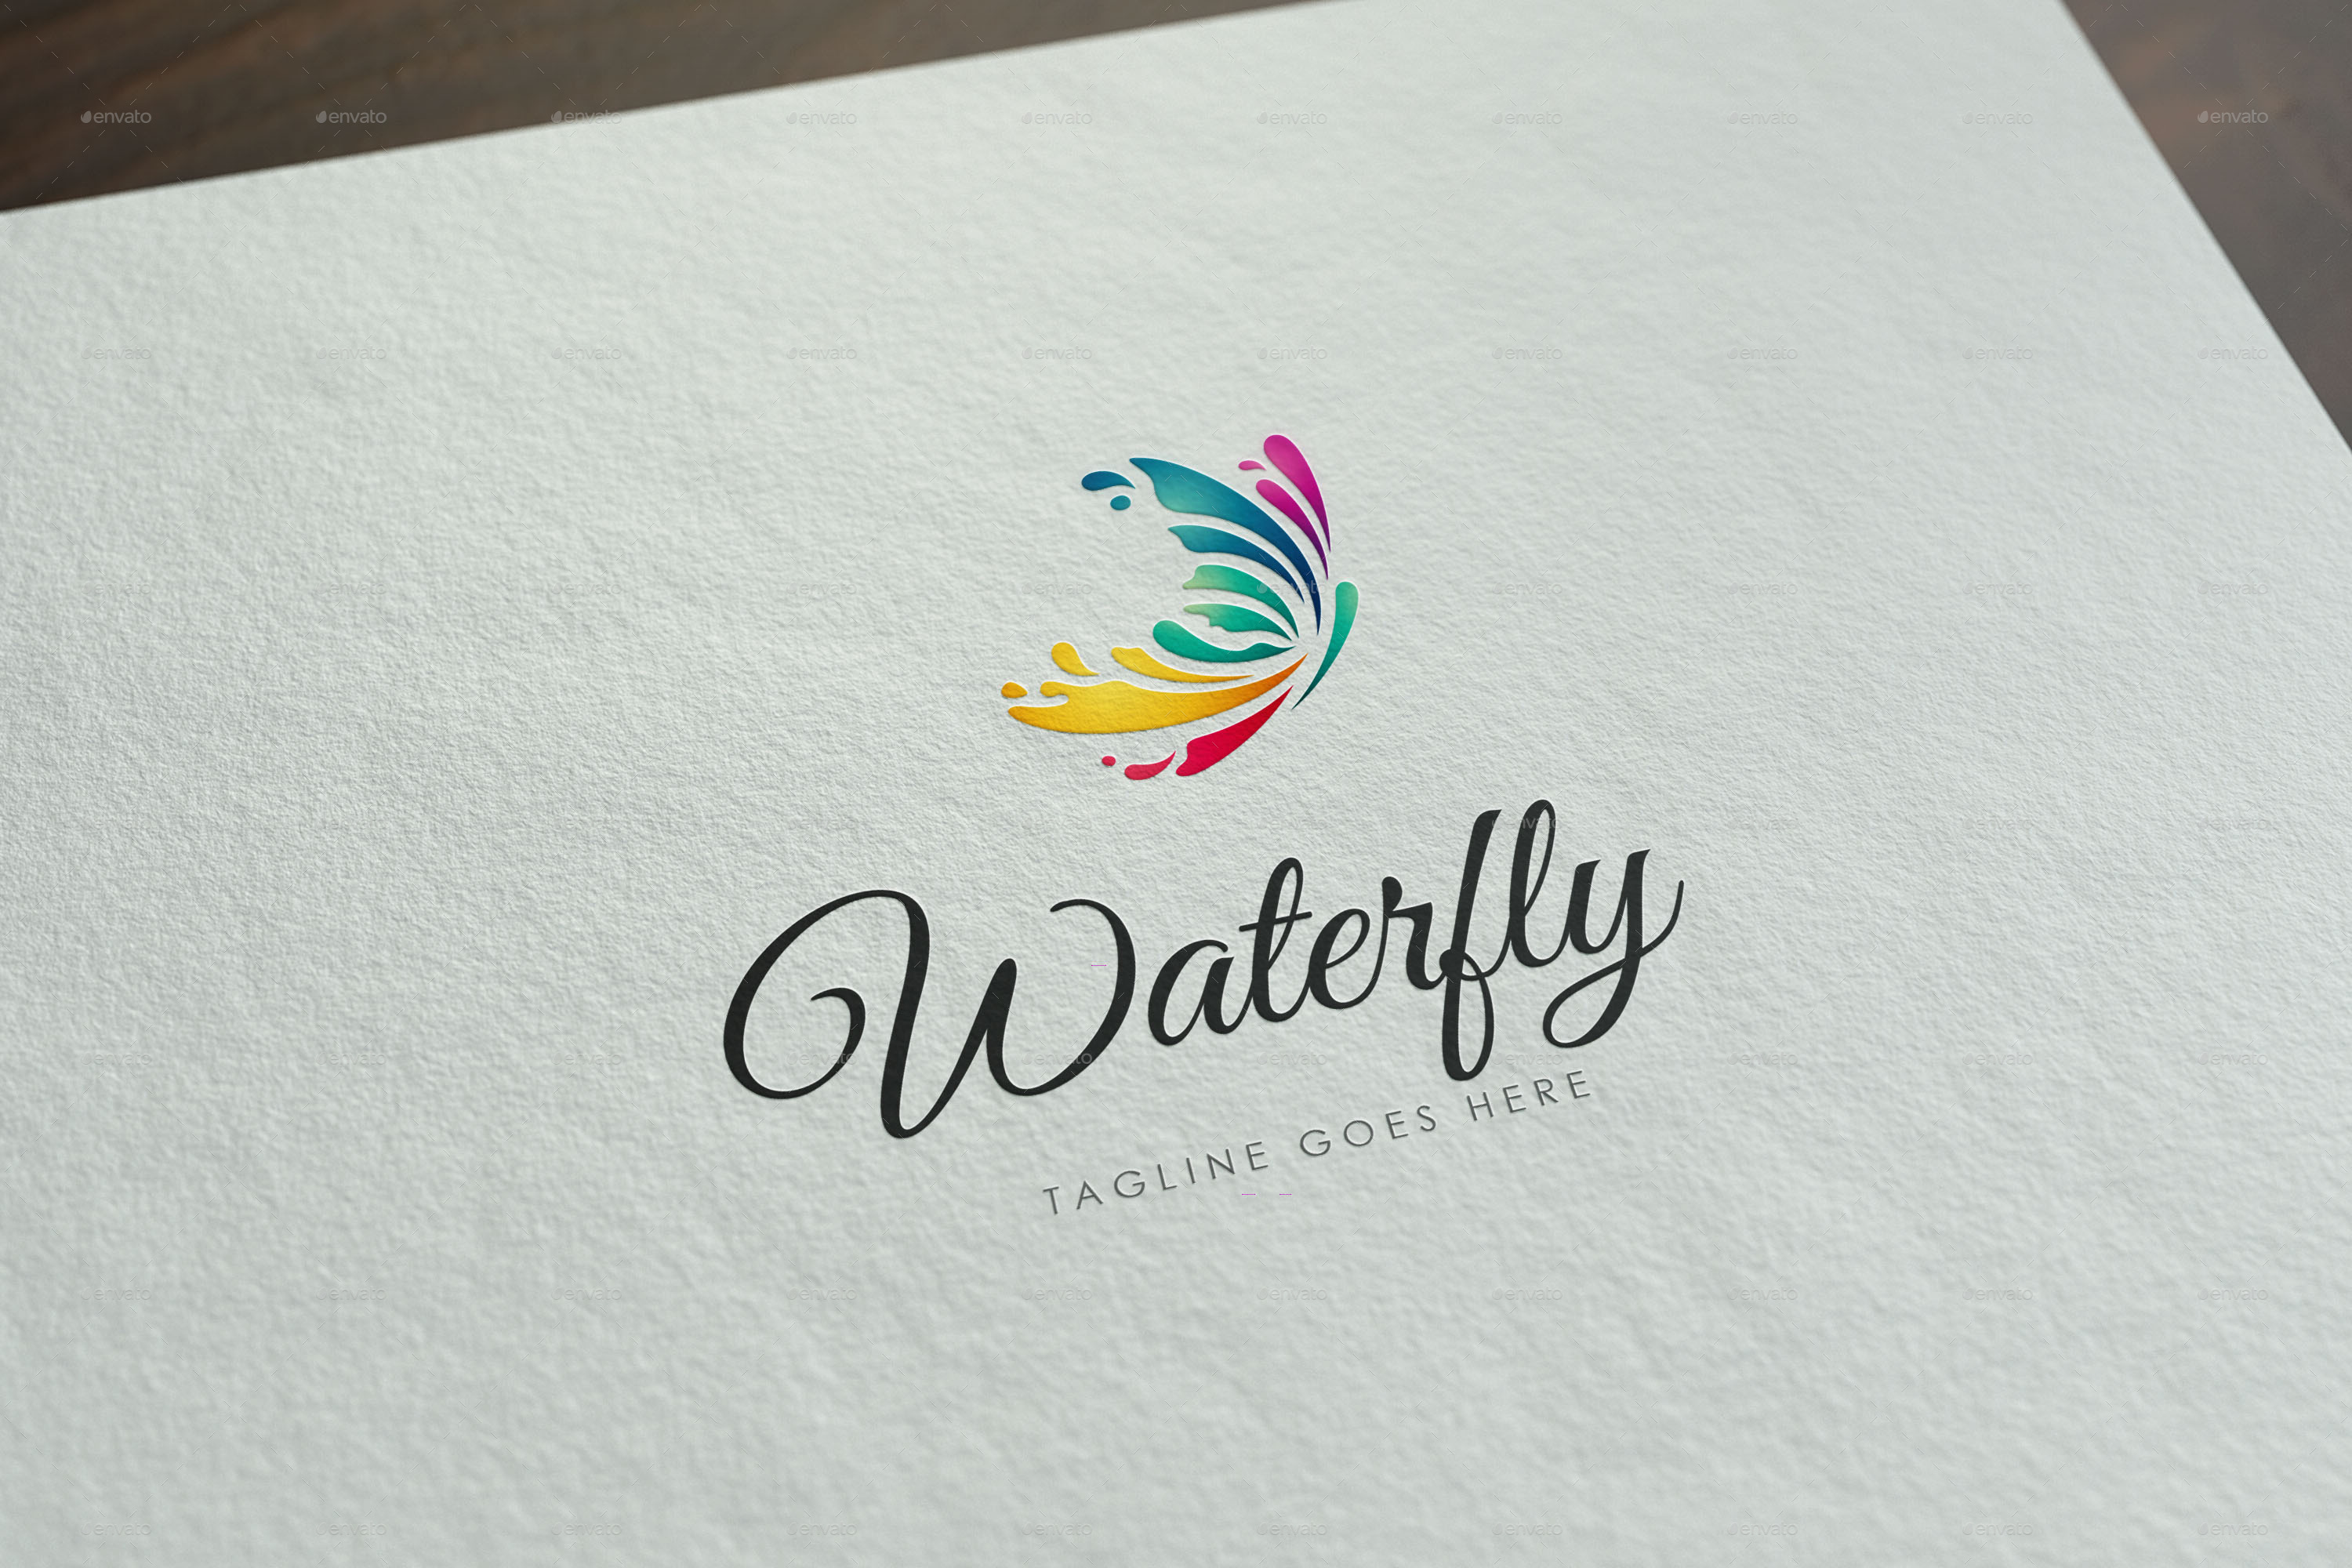 waterfly-logo-template